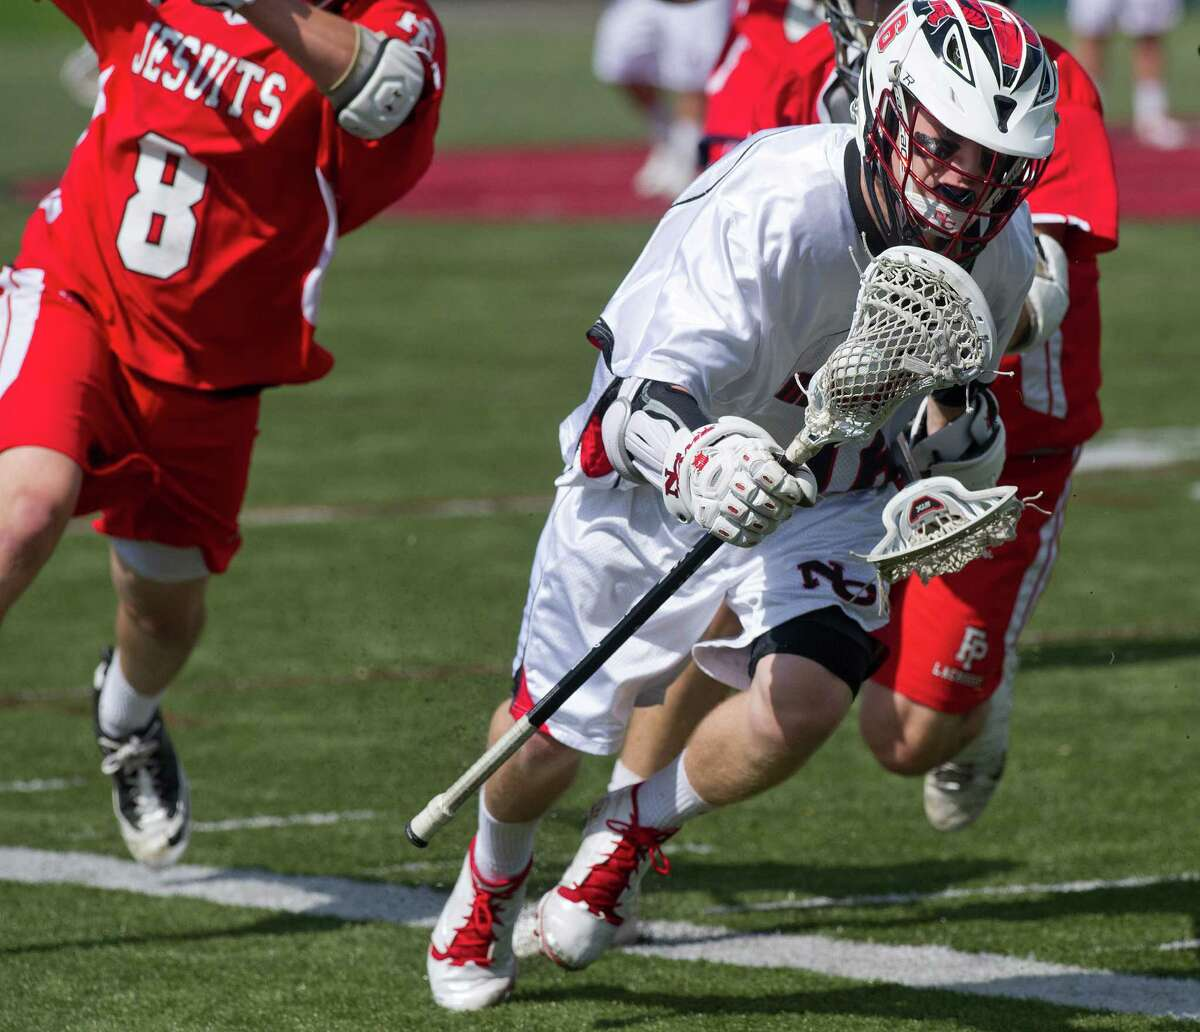 New Canaan's Harry Stanton controls the ball during the Rams' 2014 regular season finale against Fairfield Prep on May 17.